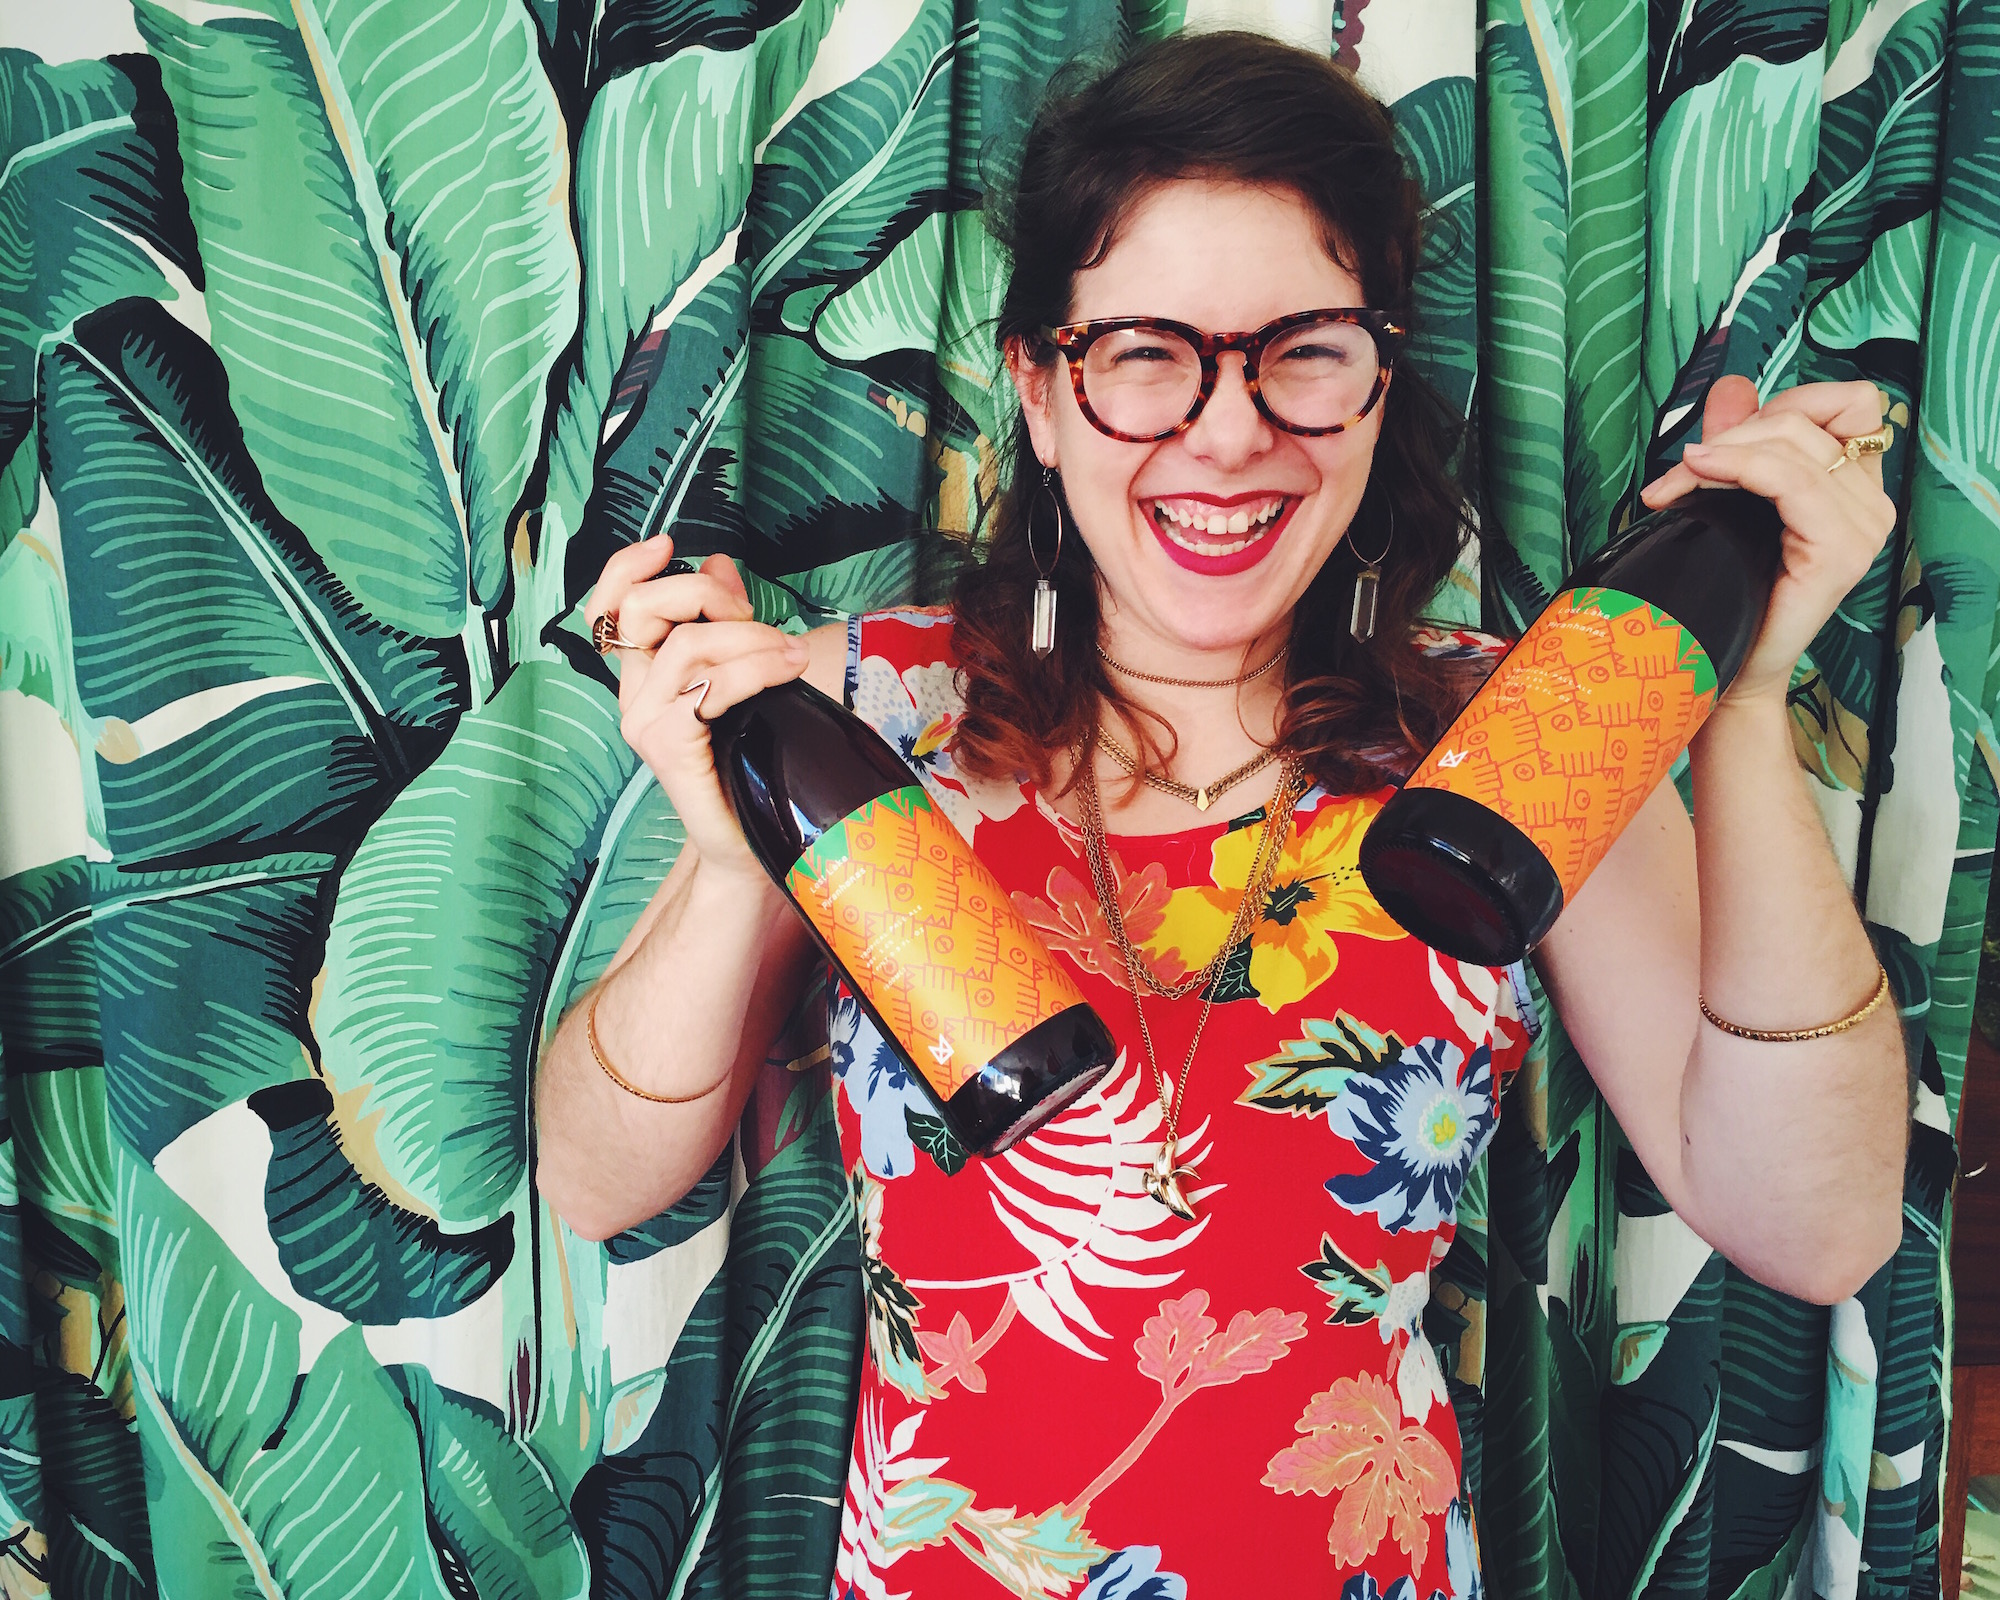 A woman in tropical clothing holding bottles of alcohol